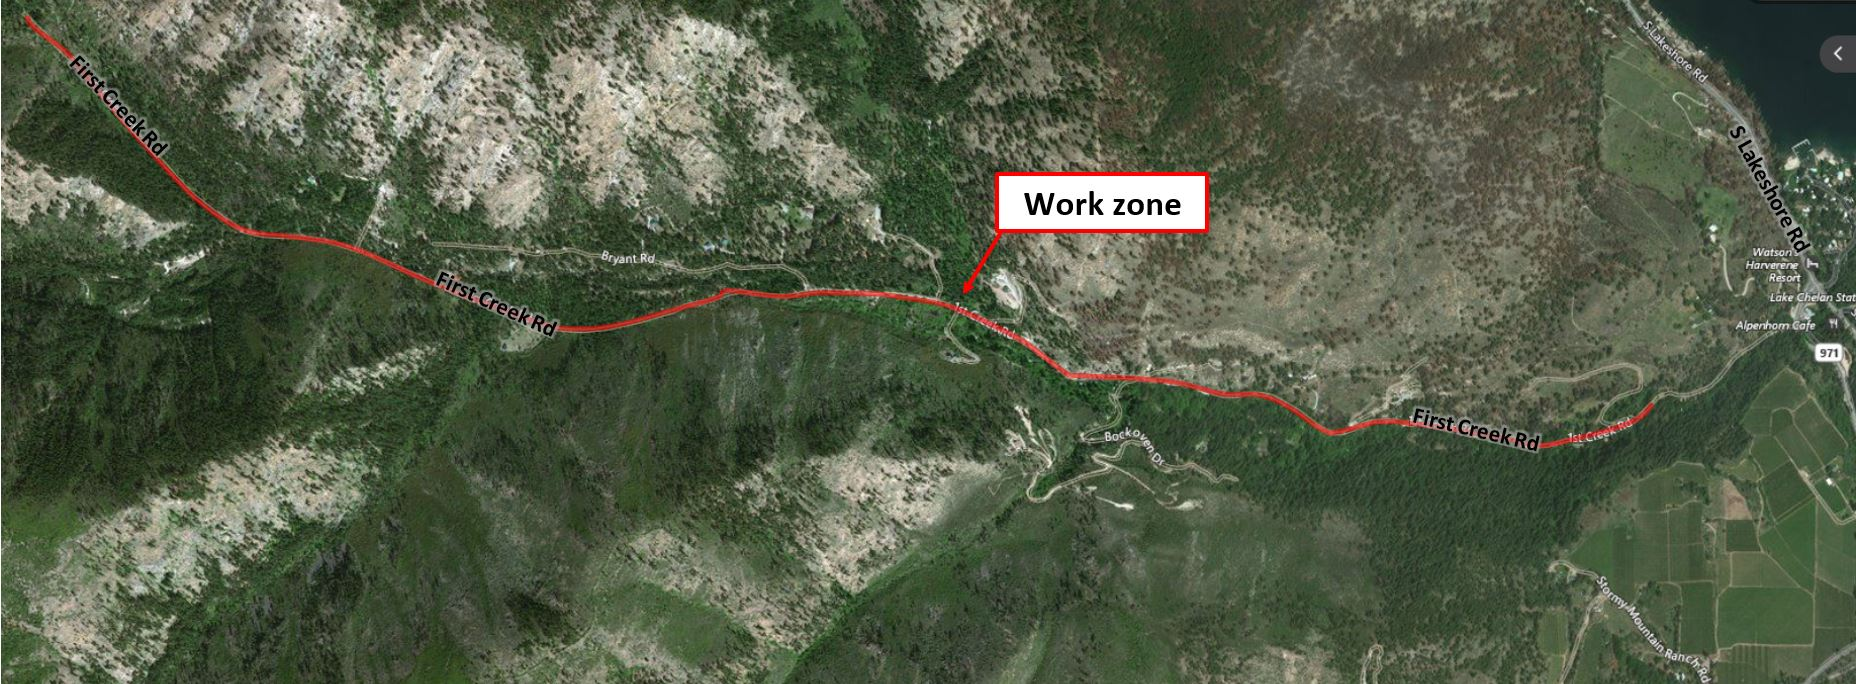 Map of First Creek Cable Replacement Work Zone